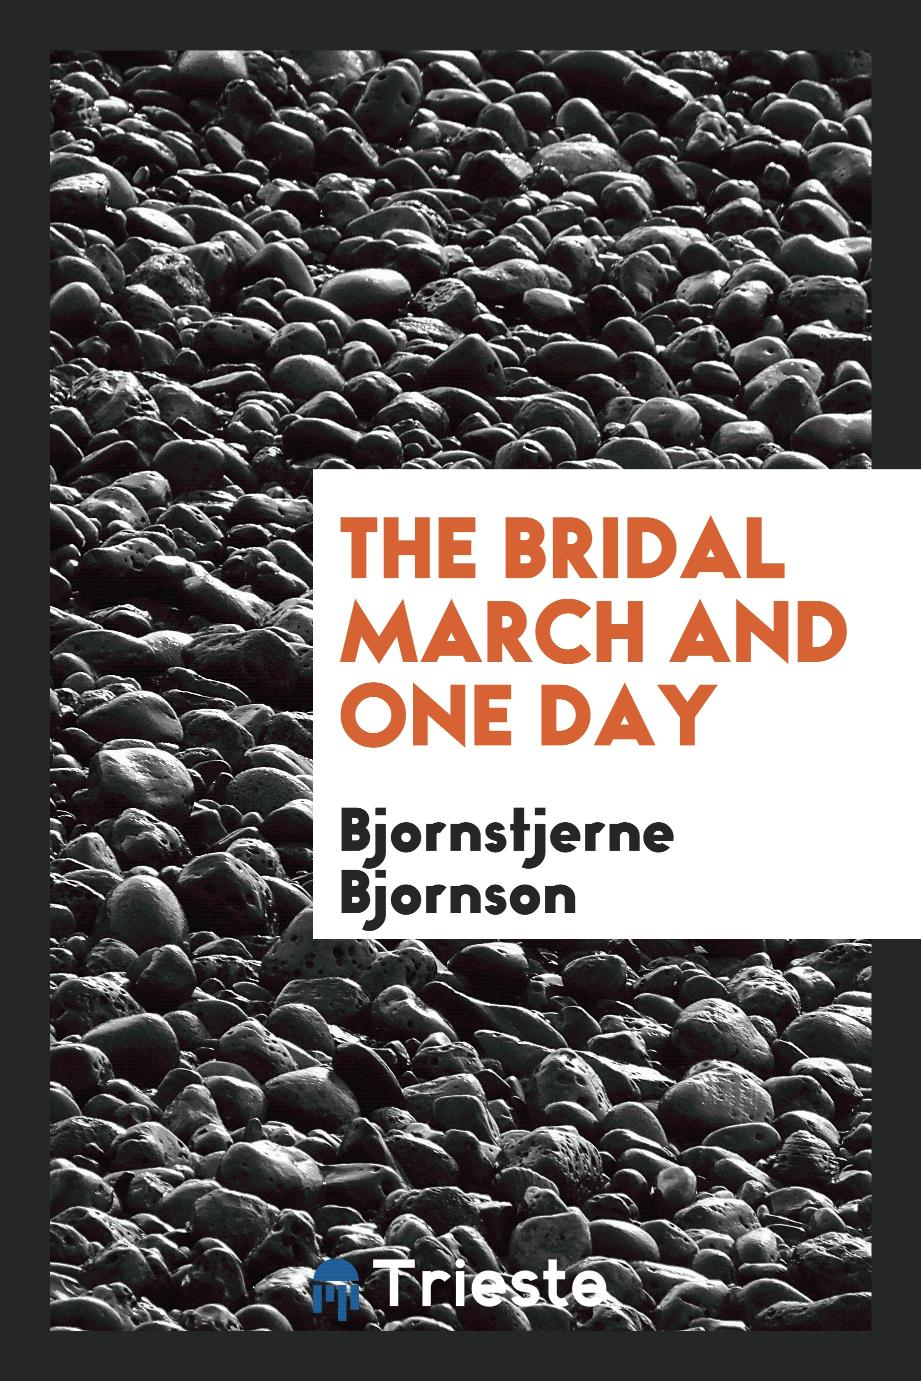 The bridal march and One day